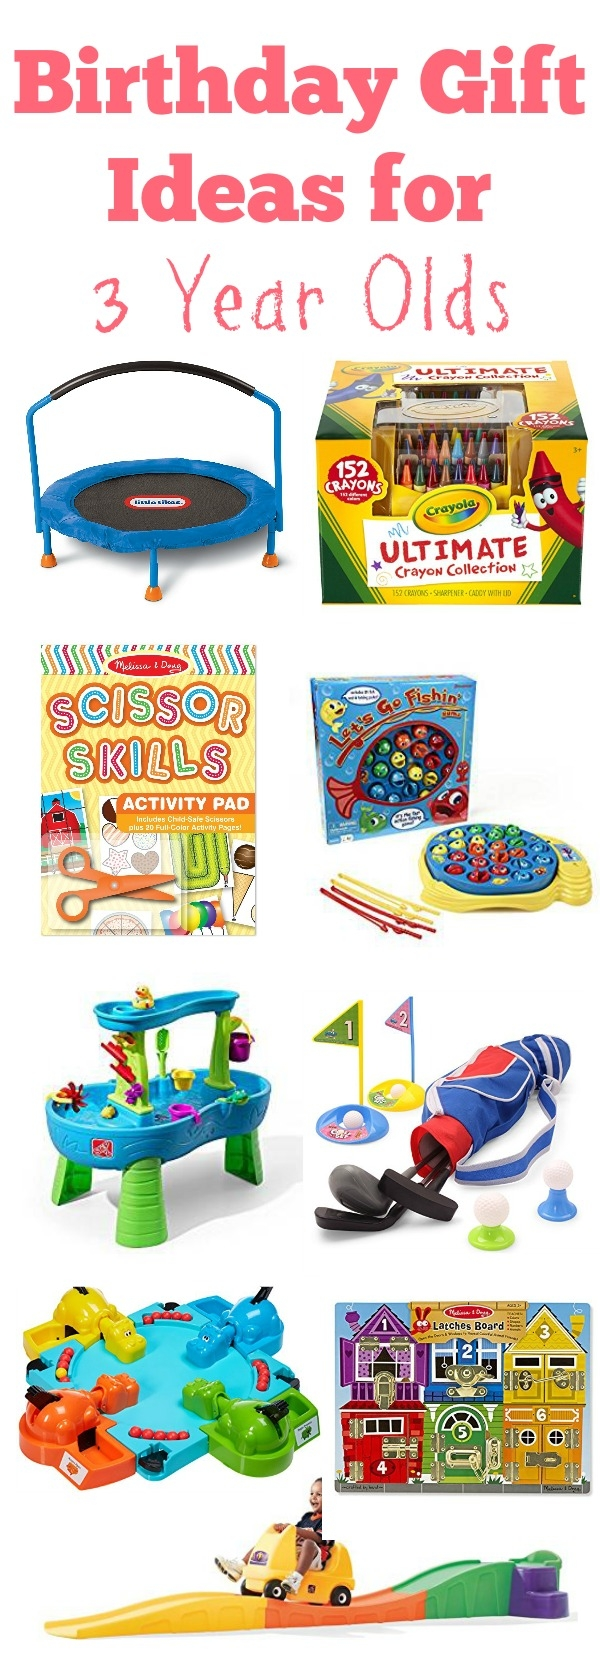 Birthday Gift Ideas For 3 Year Olds